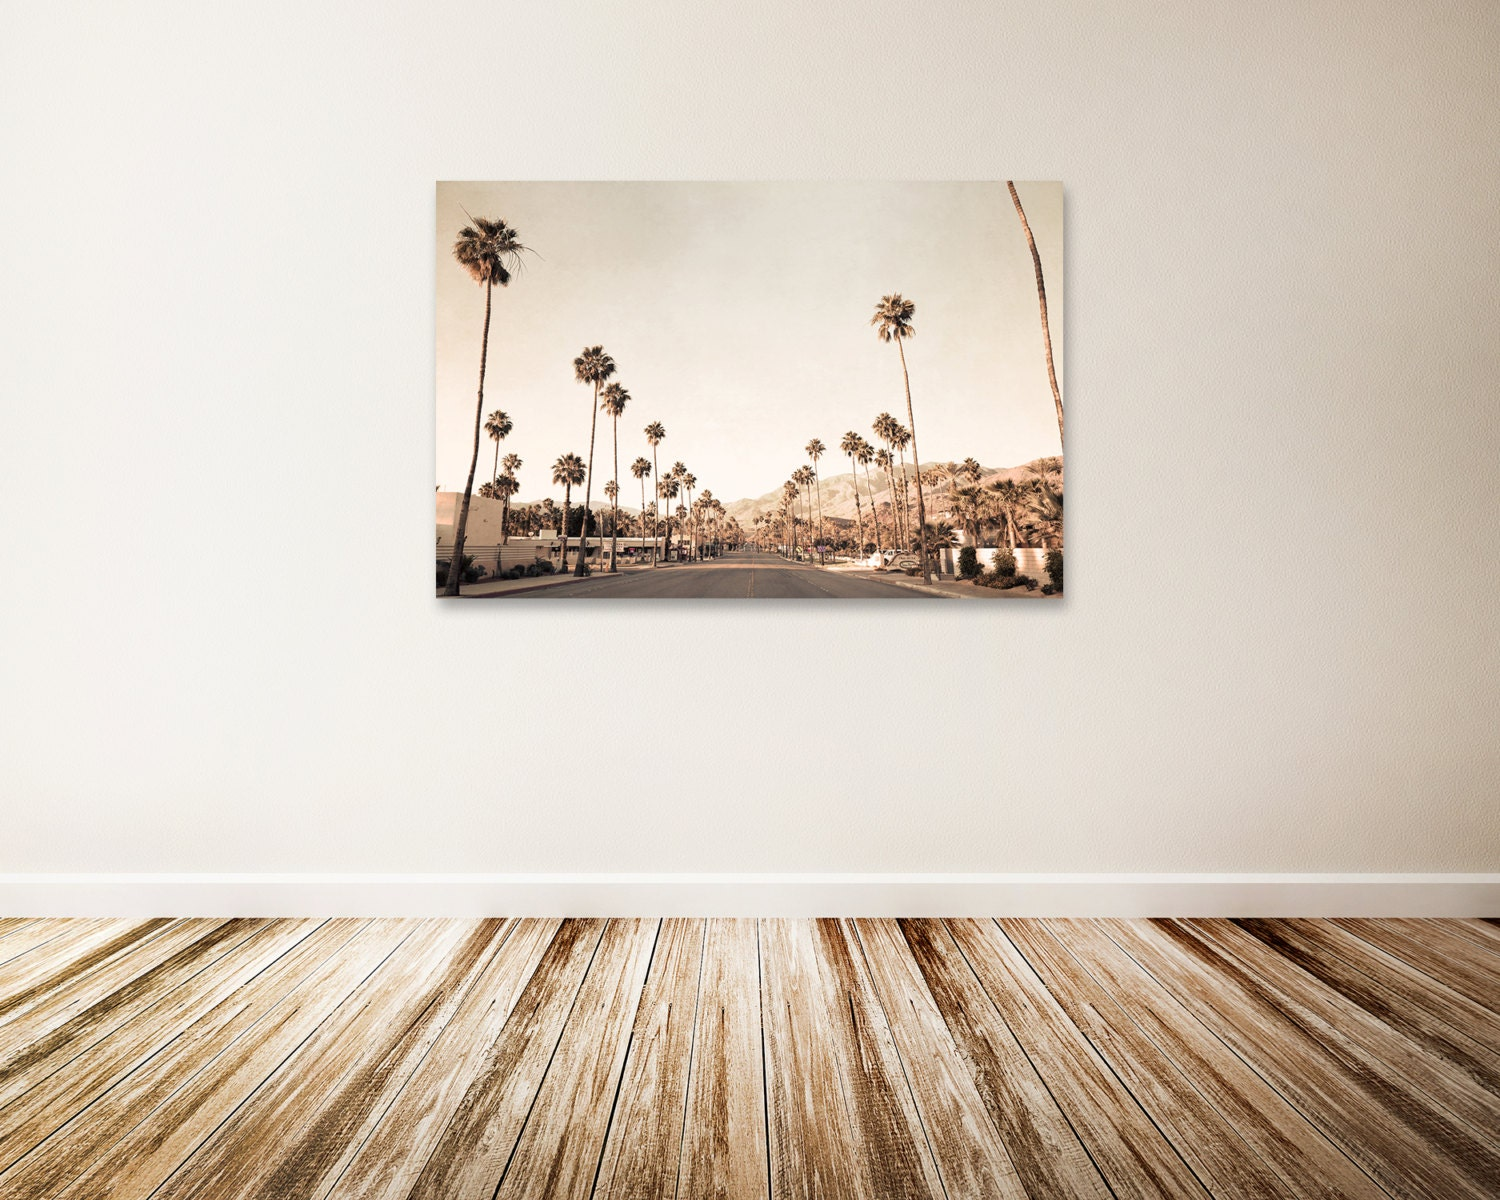 Mid century modern wall art large palm springs canvas art zoom amipublicfo Choice Image